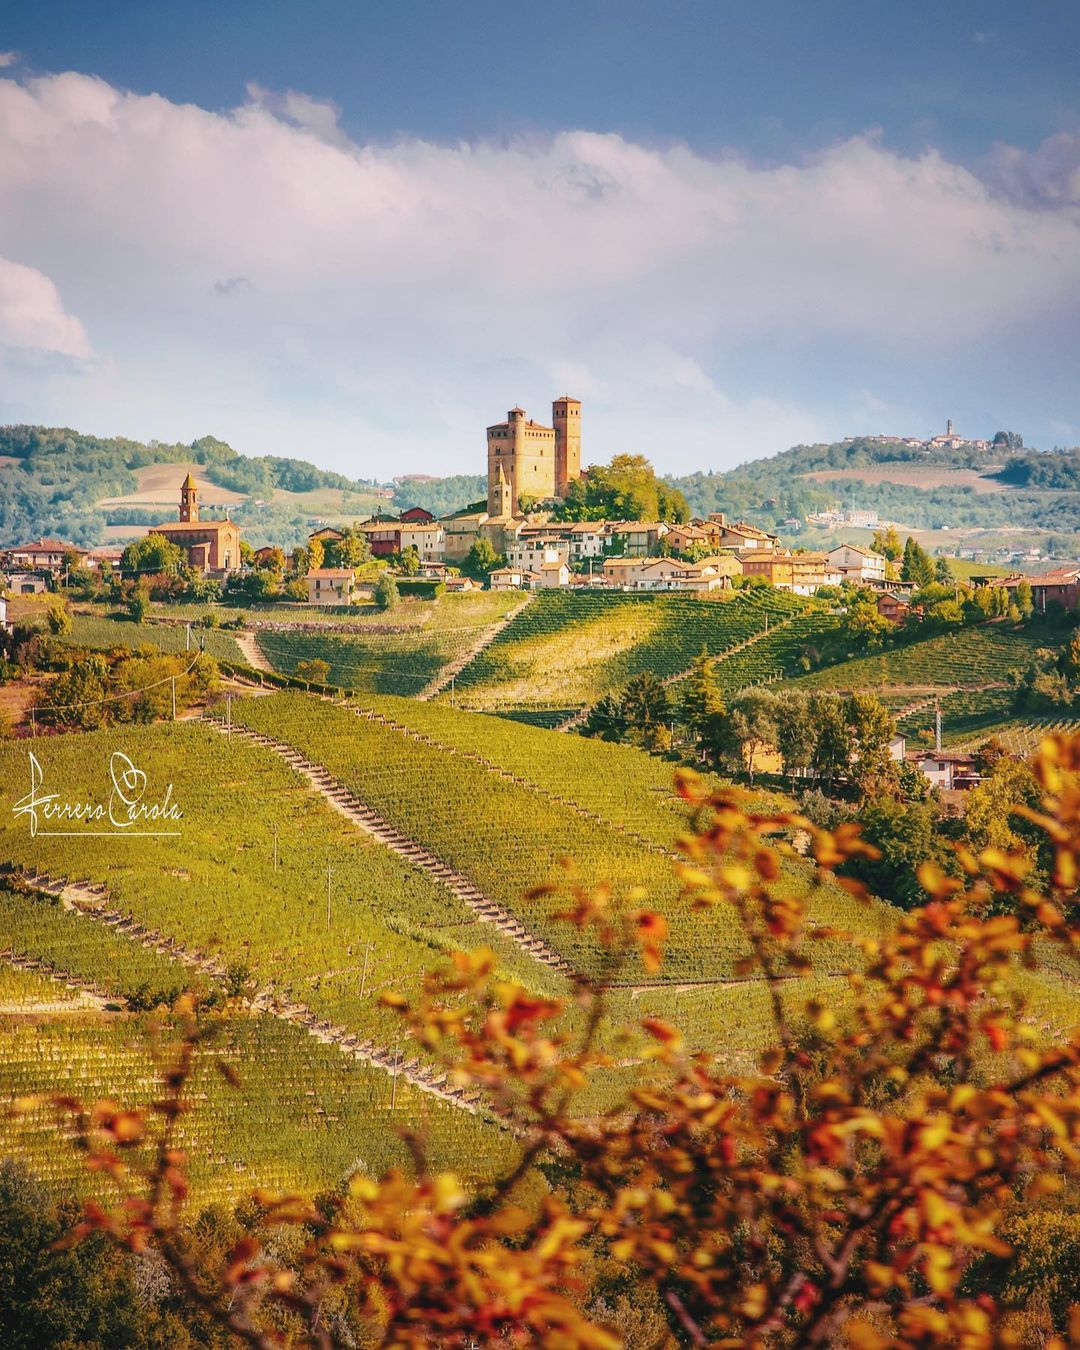 dove andare weekend autunno